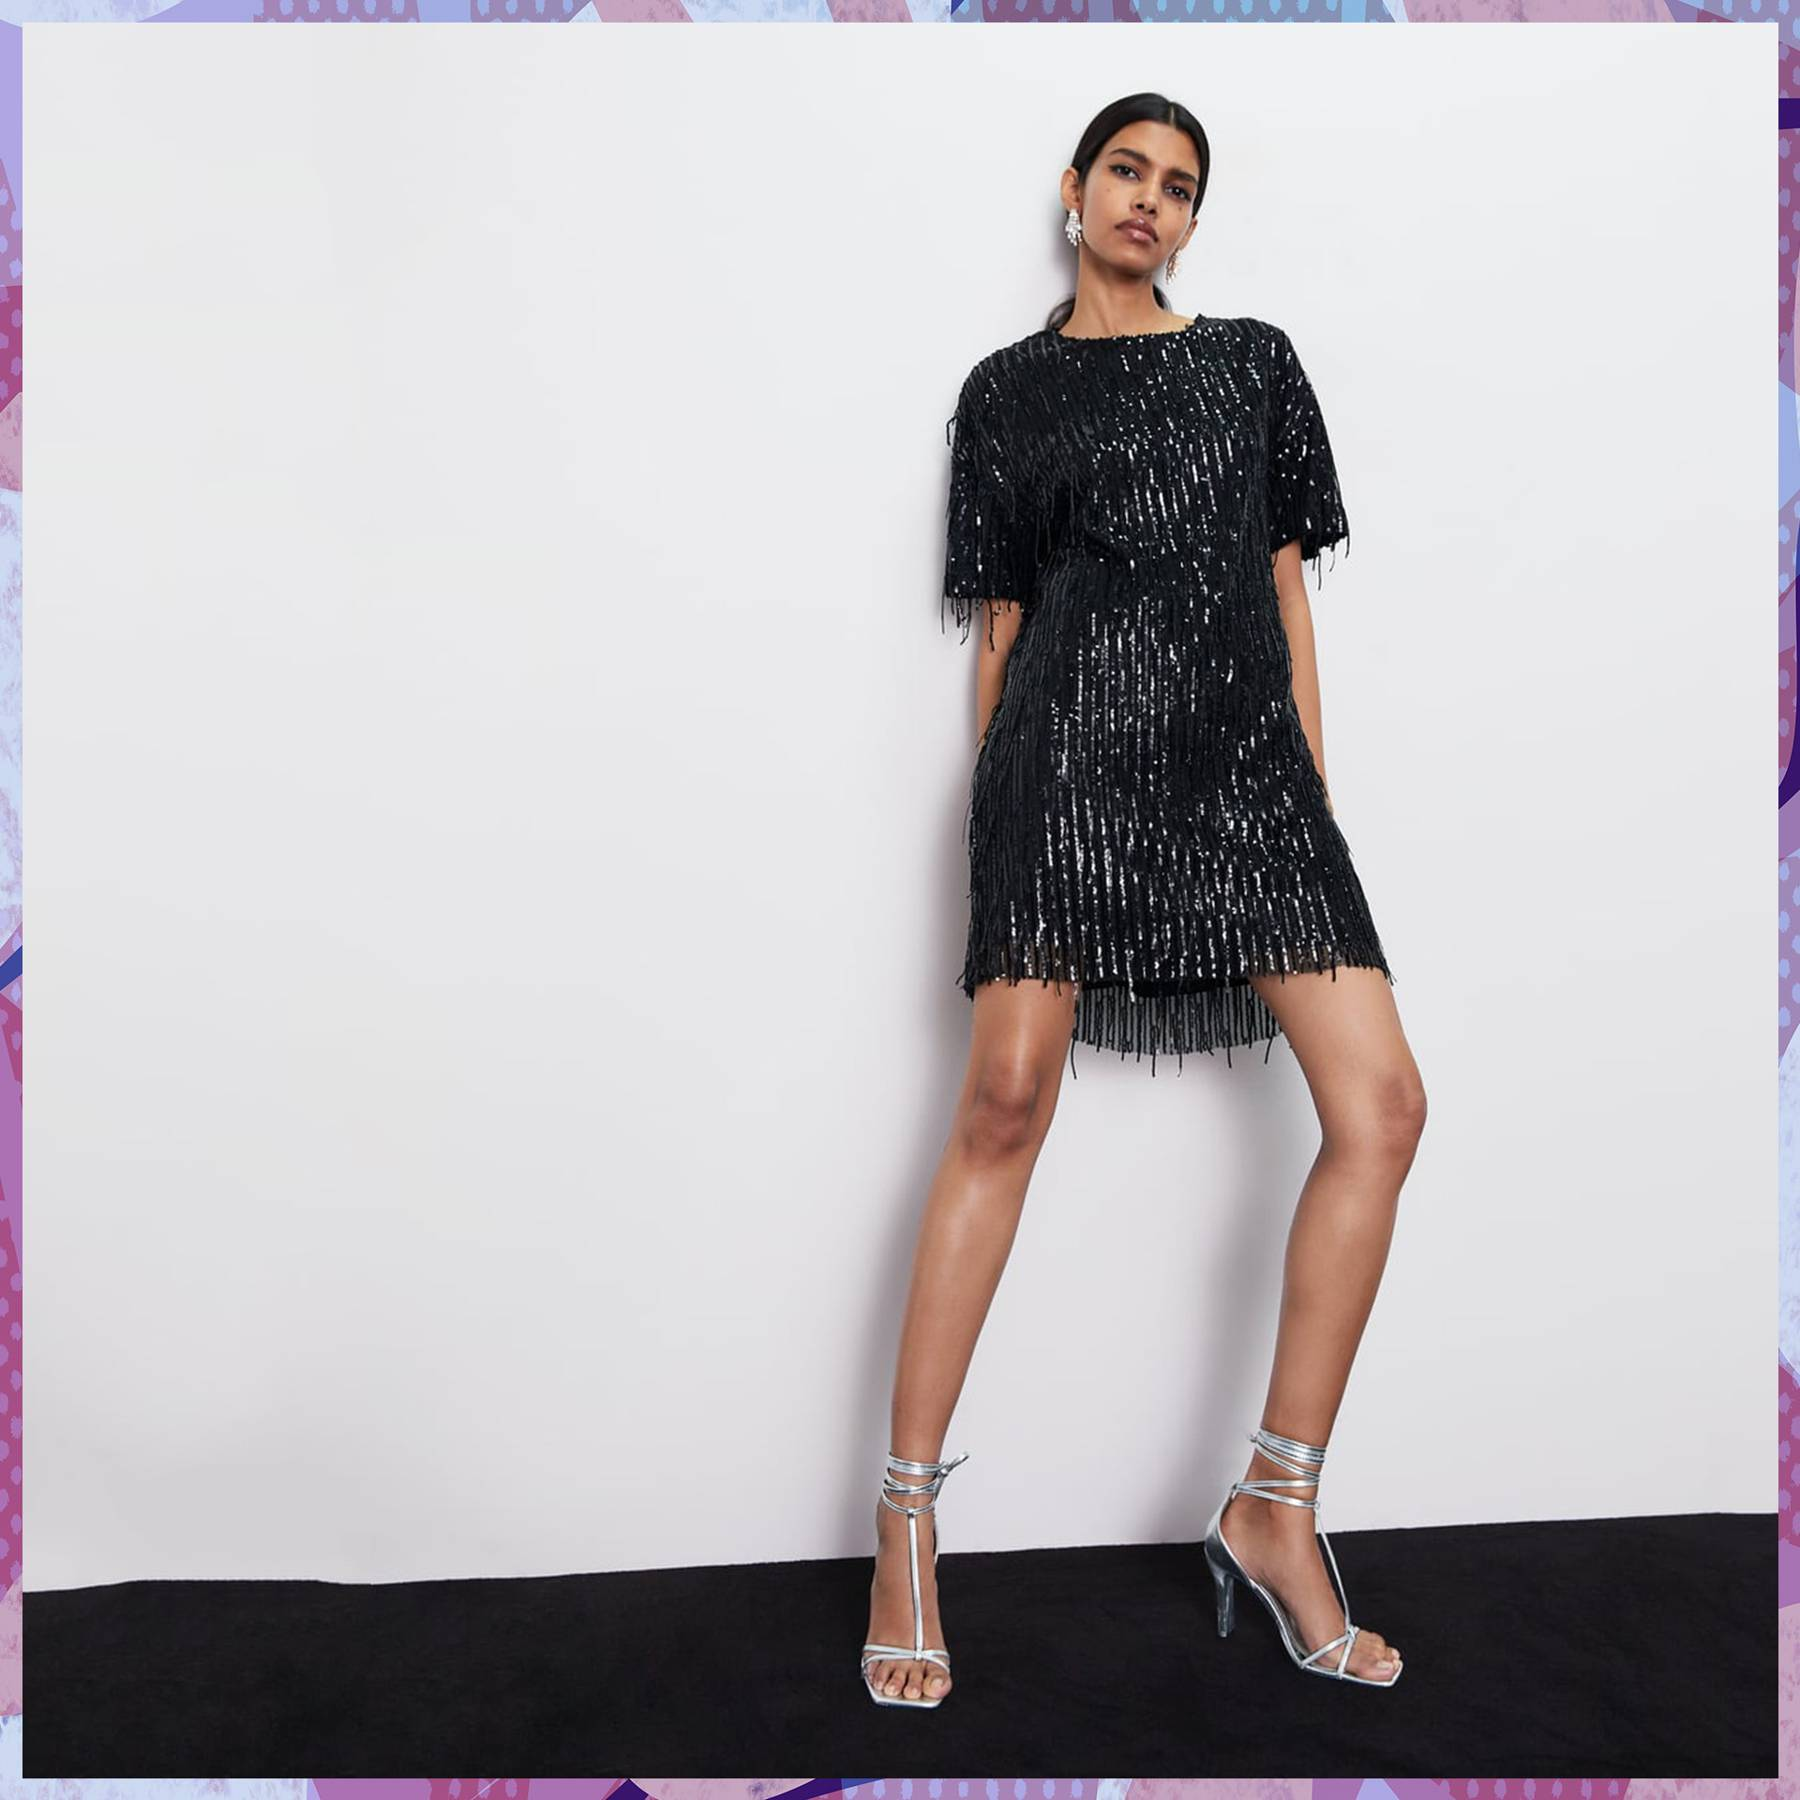 Zara's Christmas party collection is here and you're going to want *everything*